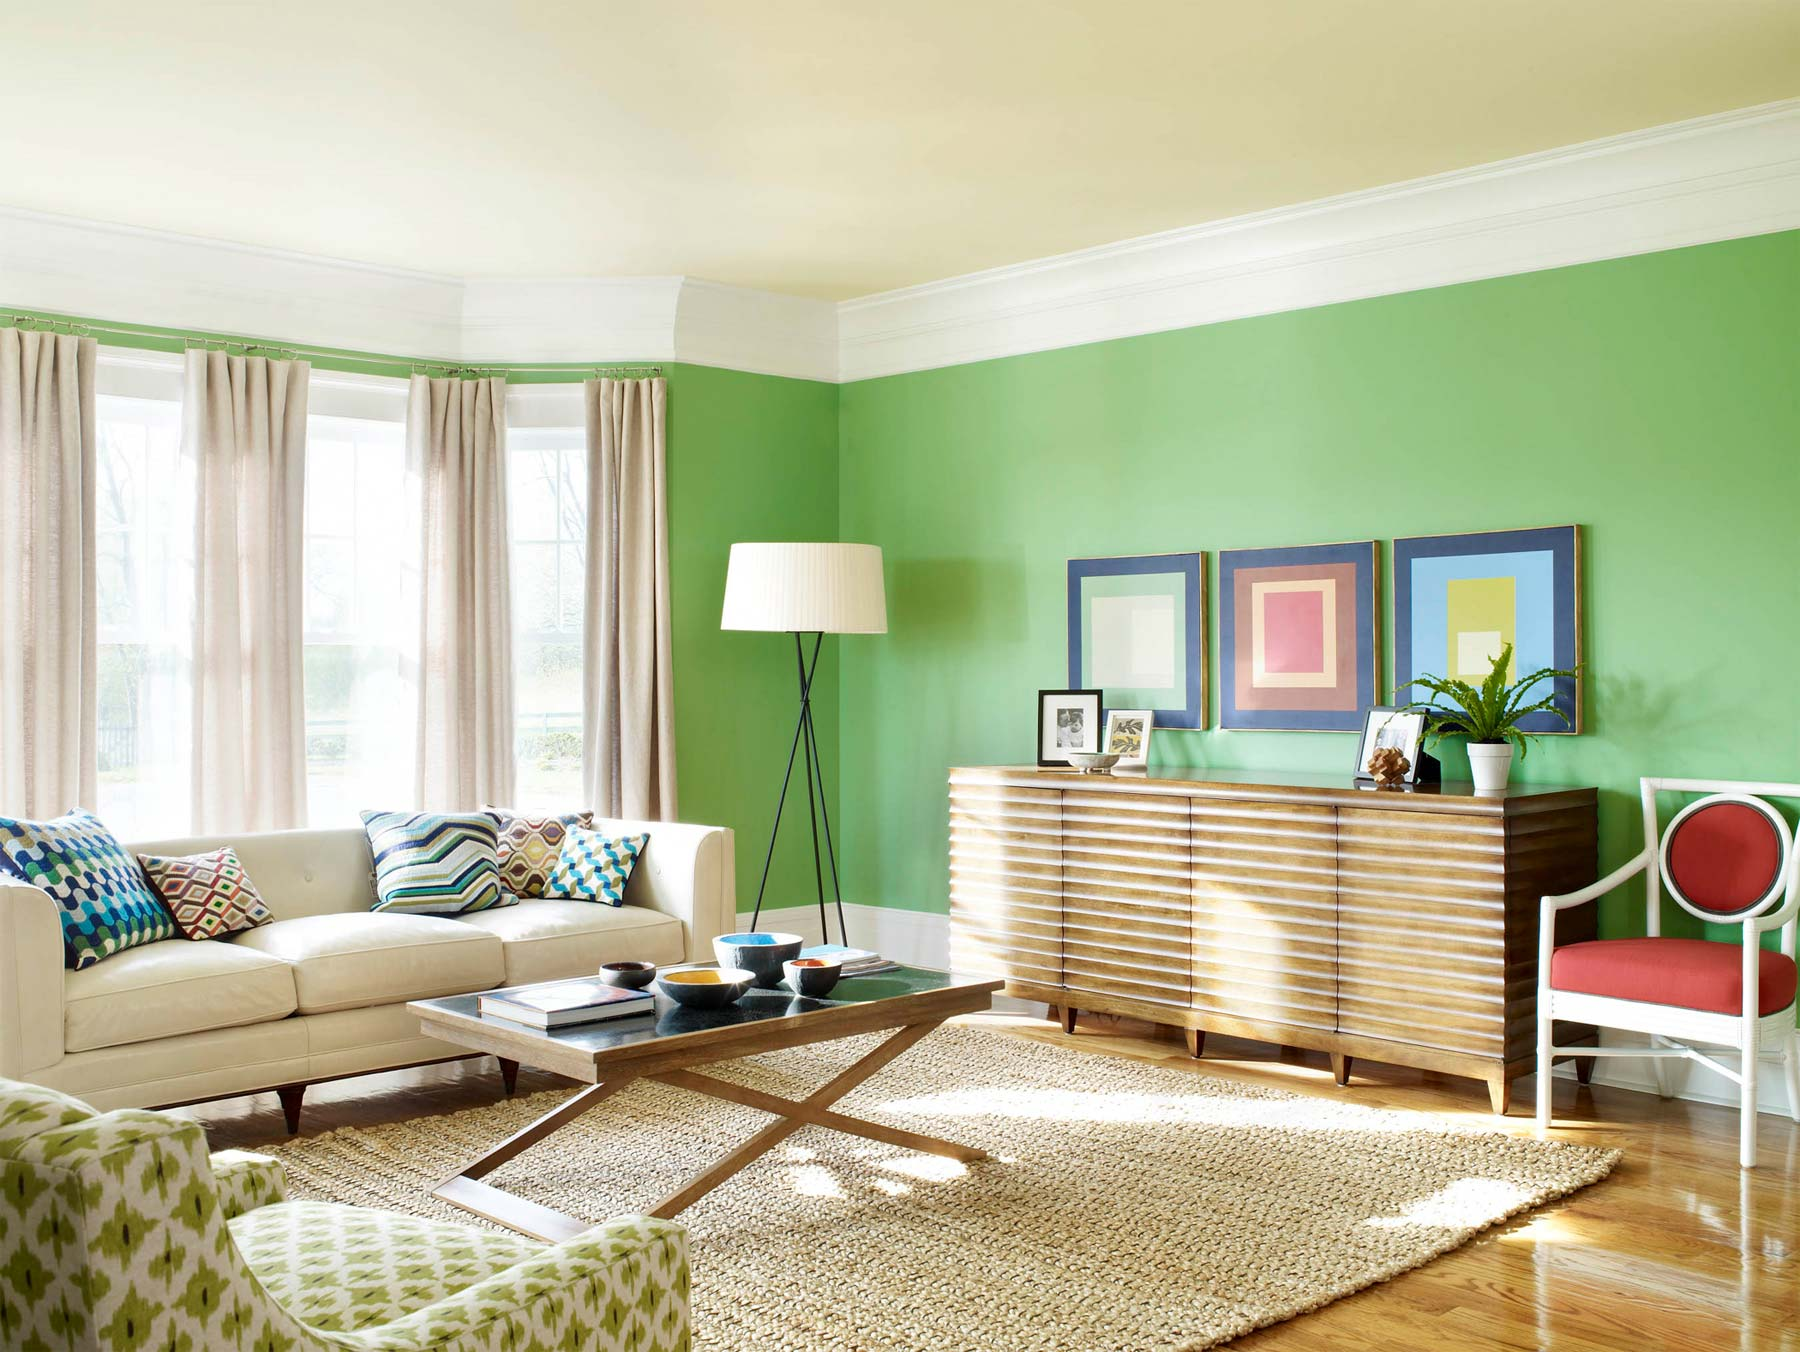 Innovative interior design tips my decorative Paint colors in rooms